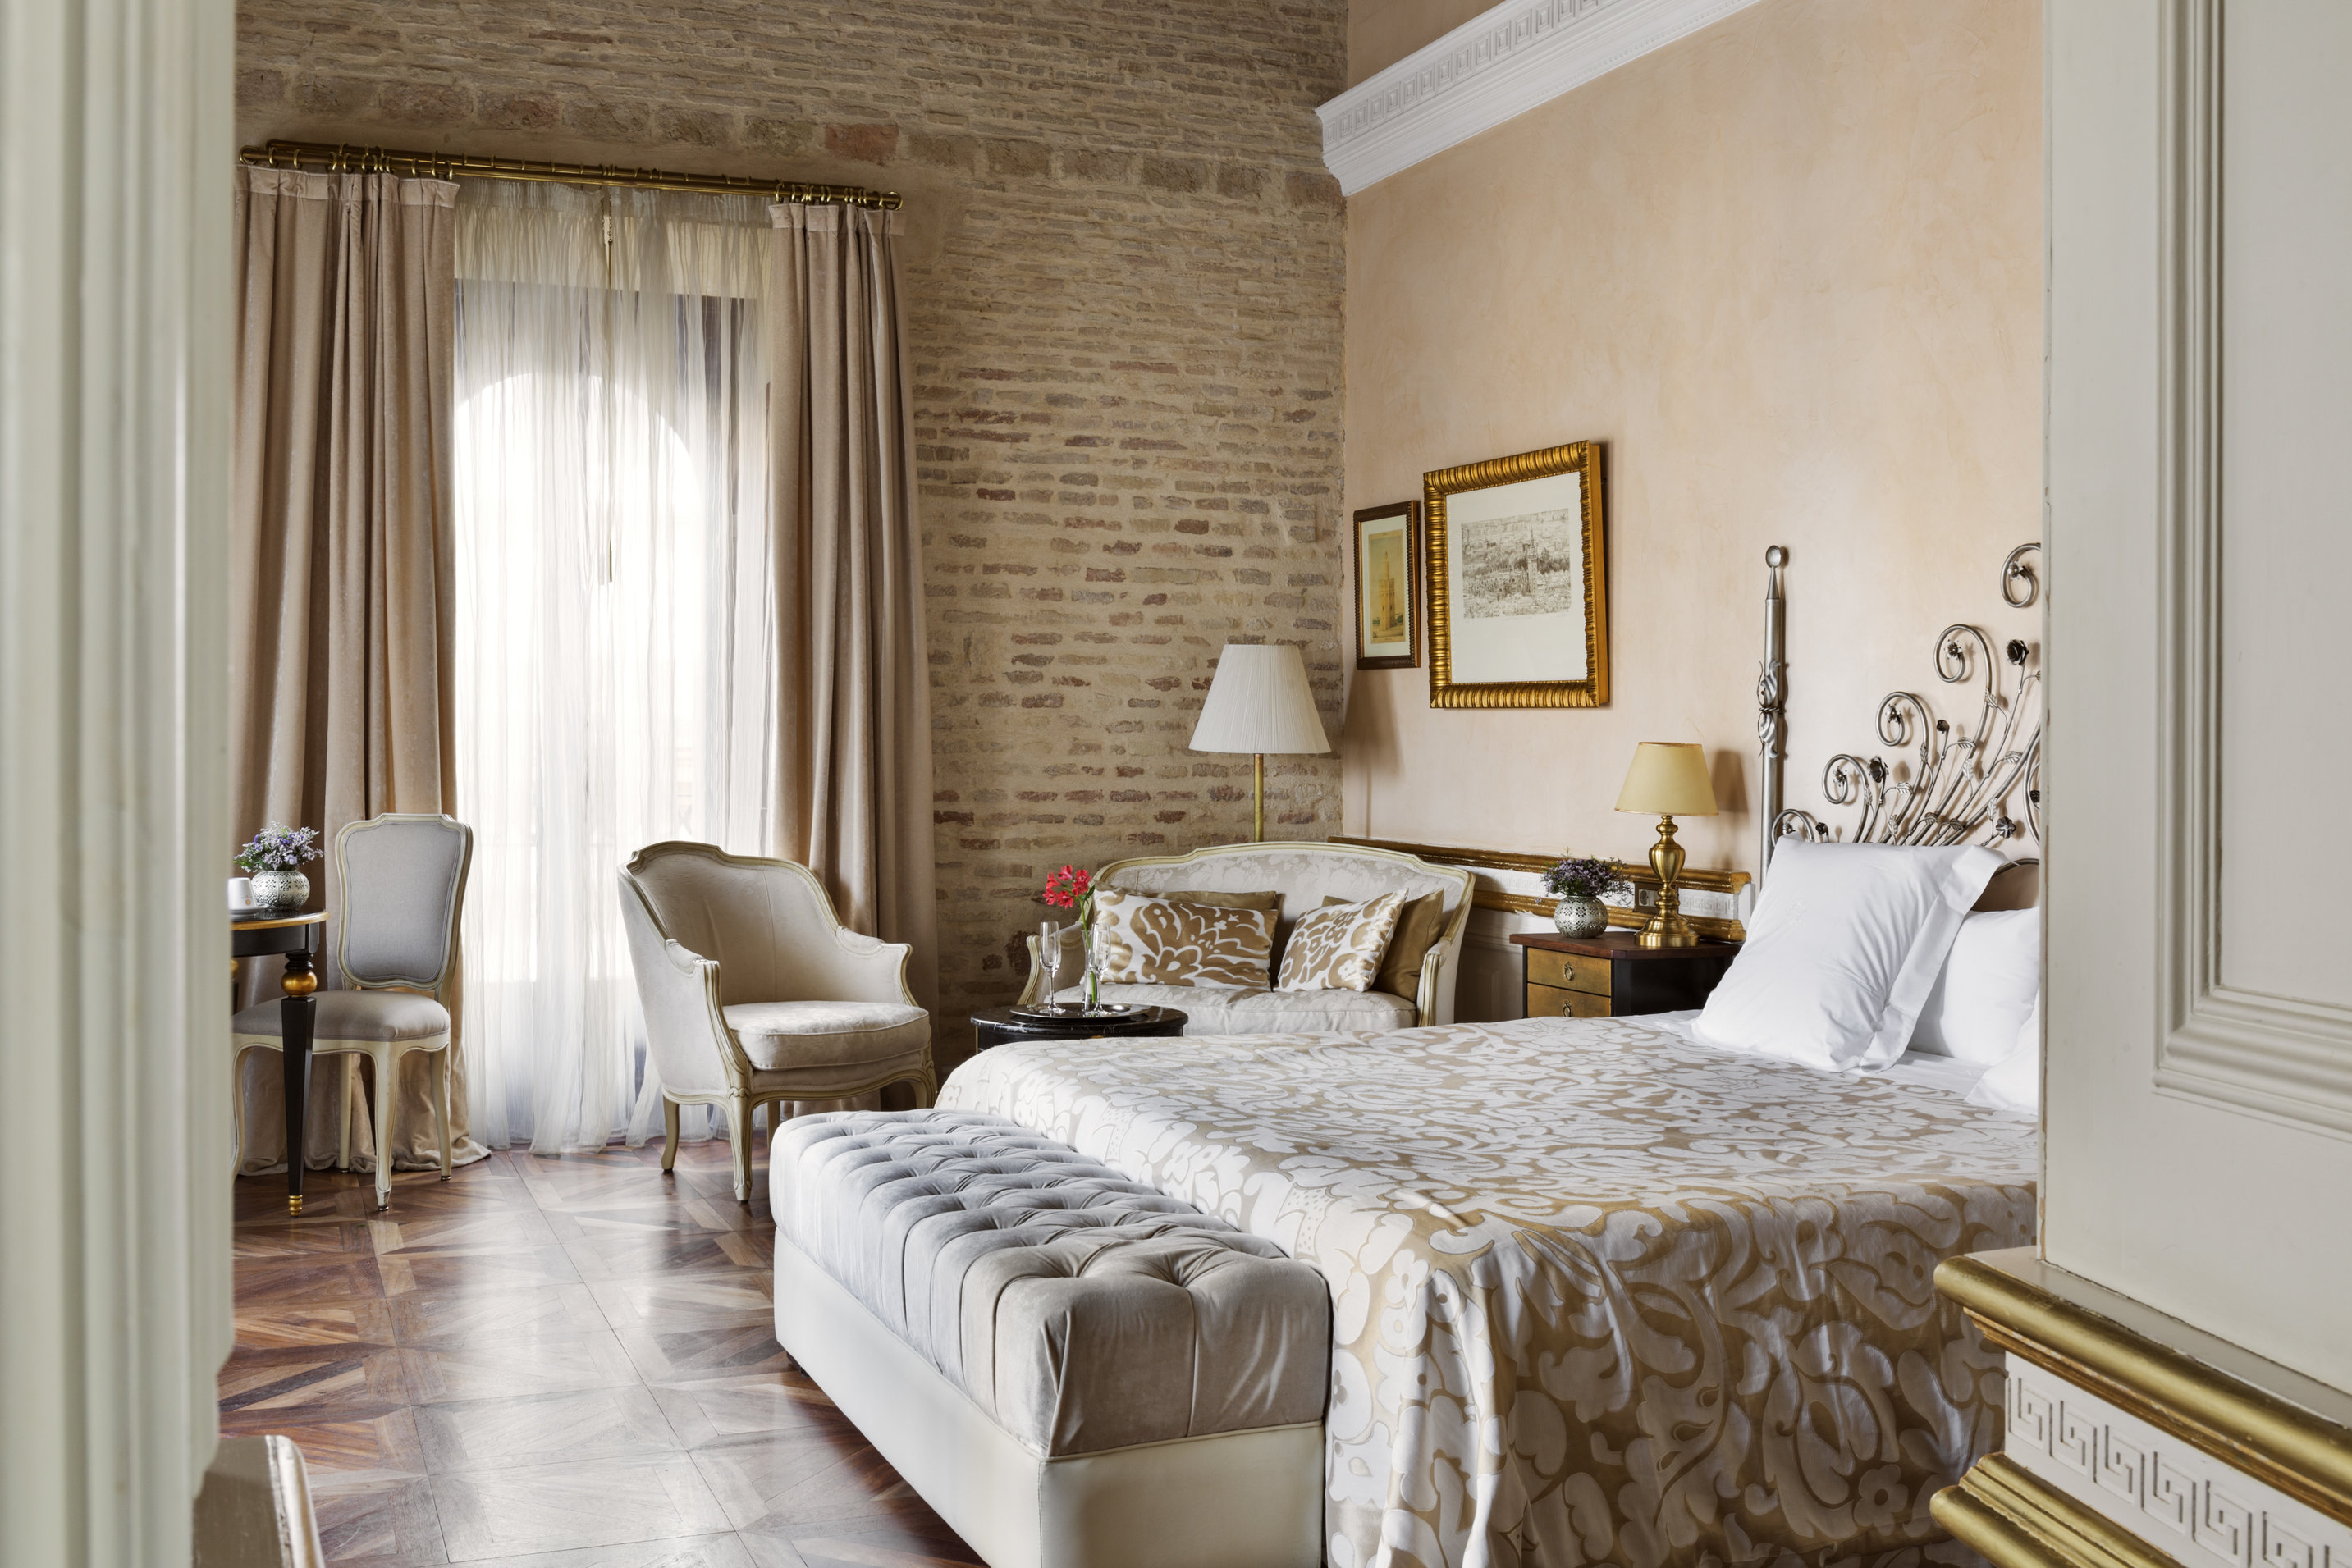 seville jewish singles Vida local is a group to  dining table for 4 and a sofa one double bedroom and two singles this is  seville has a rich jewish history and a visit to barrio.